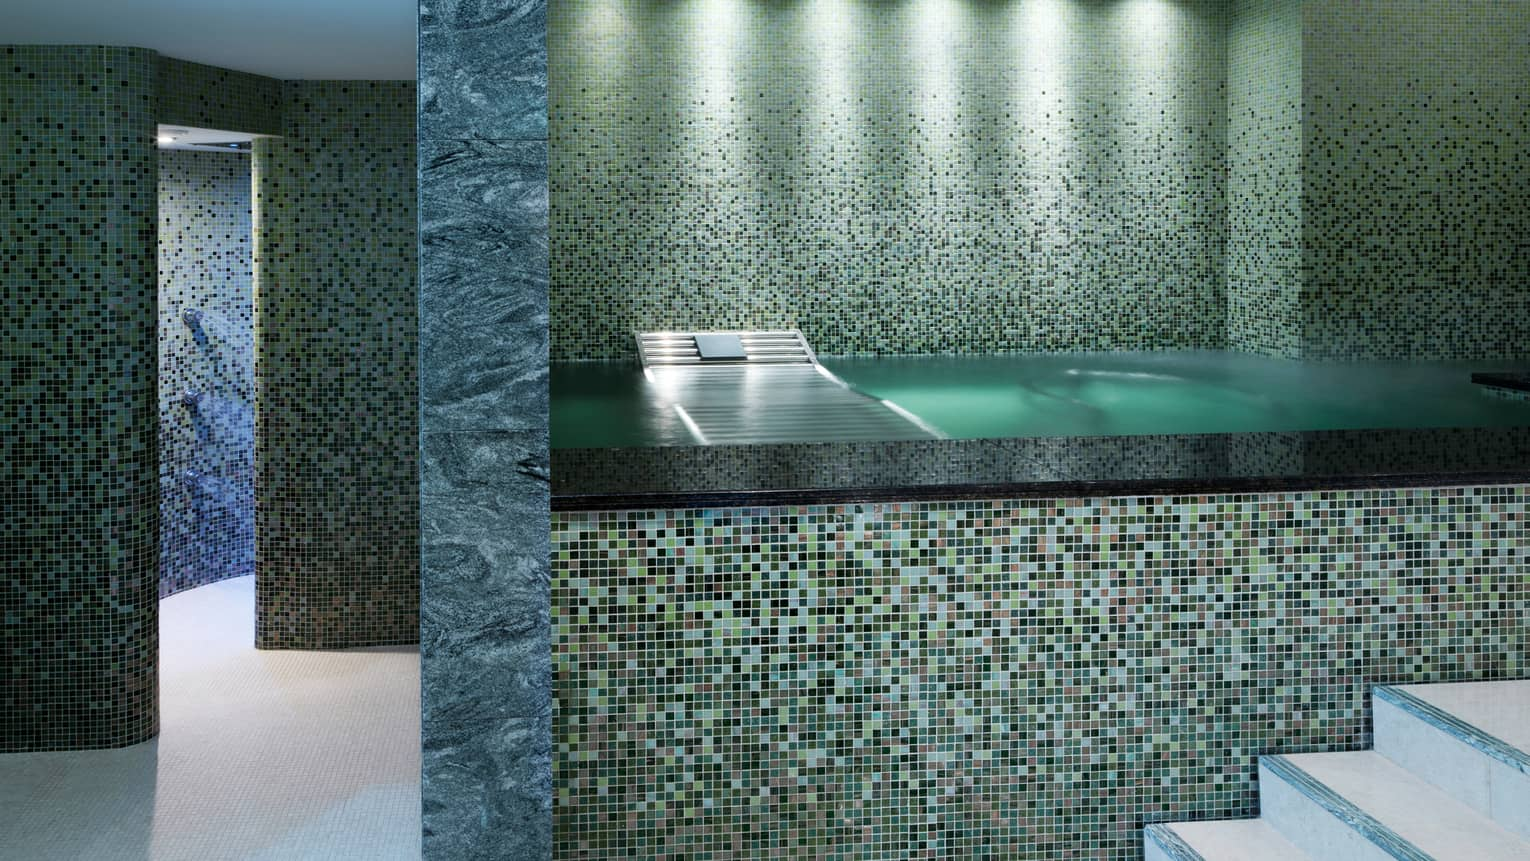 Raised bath with elaborate tile design in marble-and-tile spa room